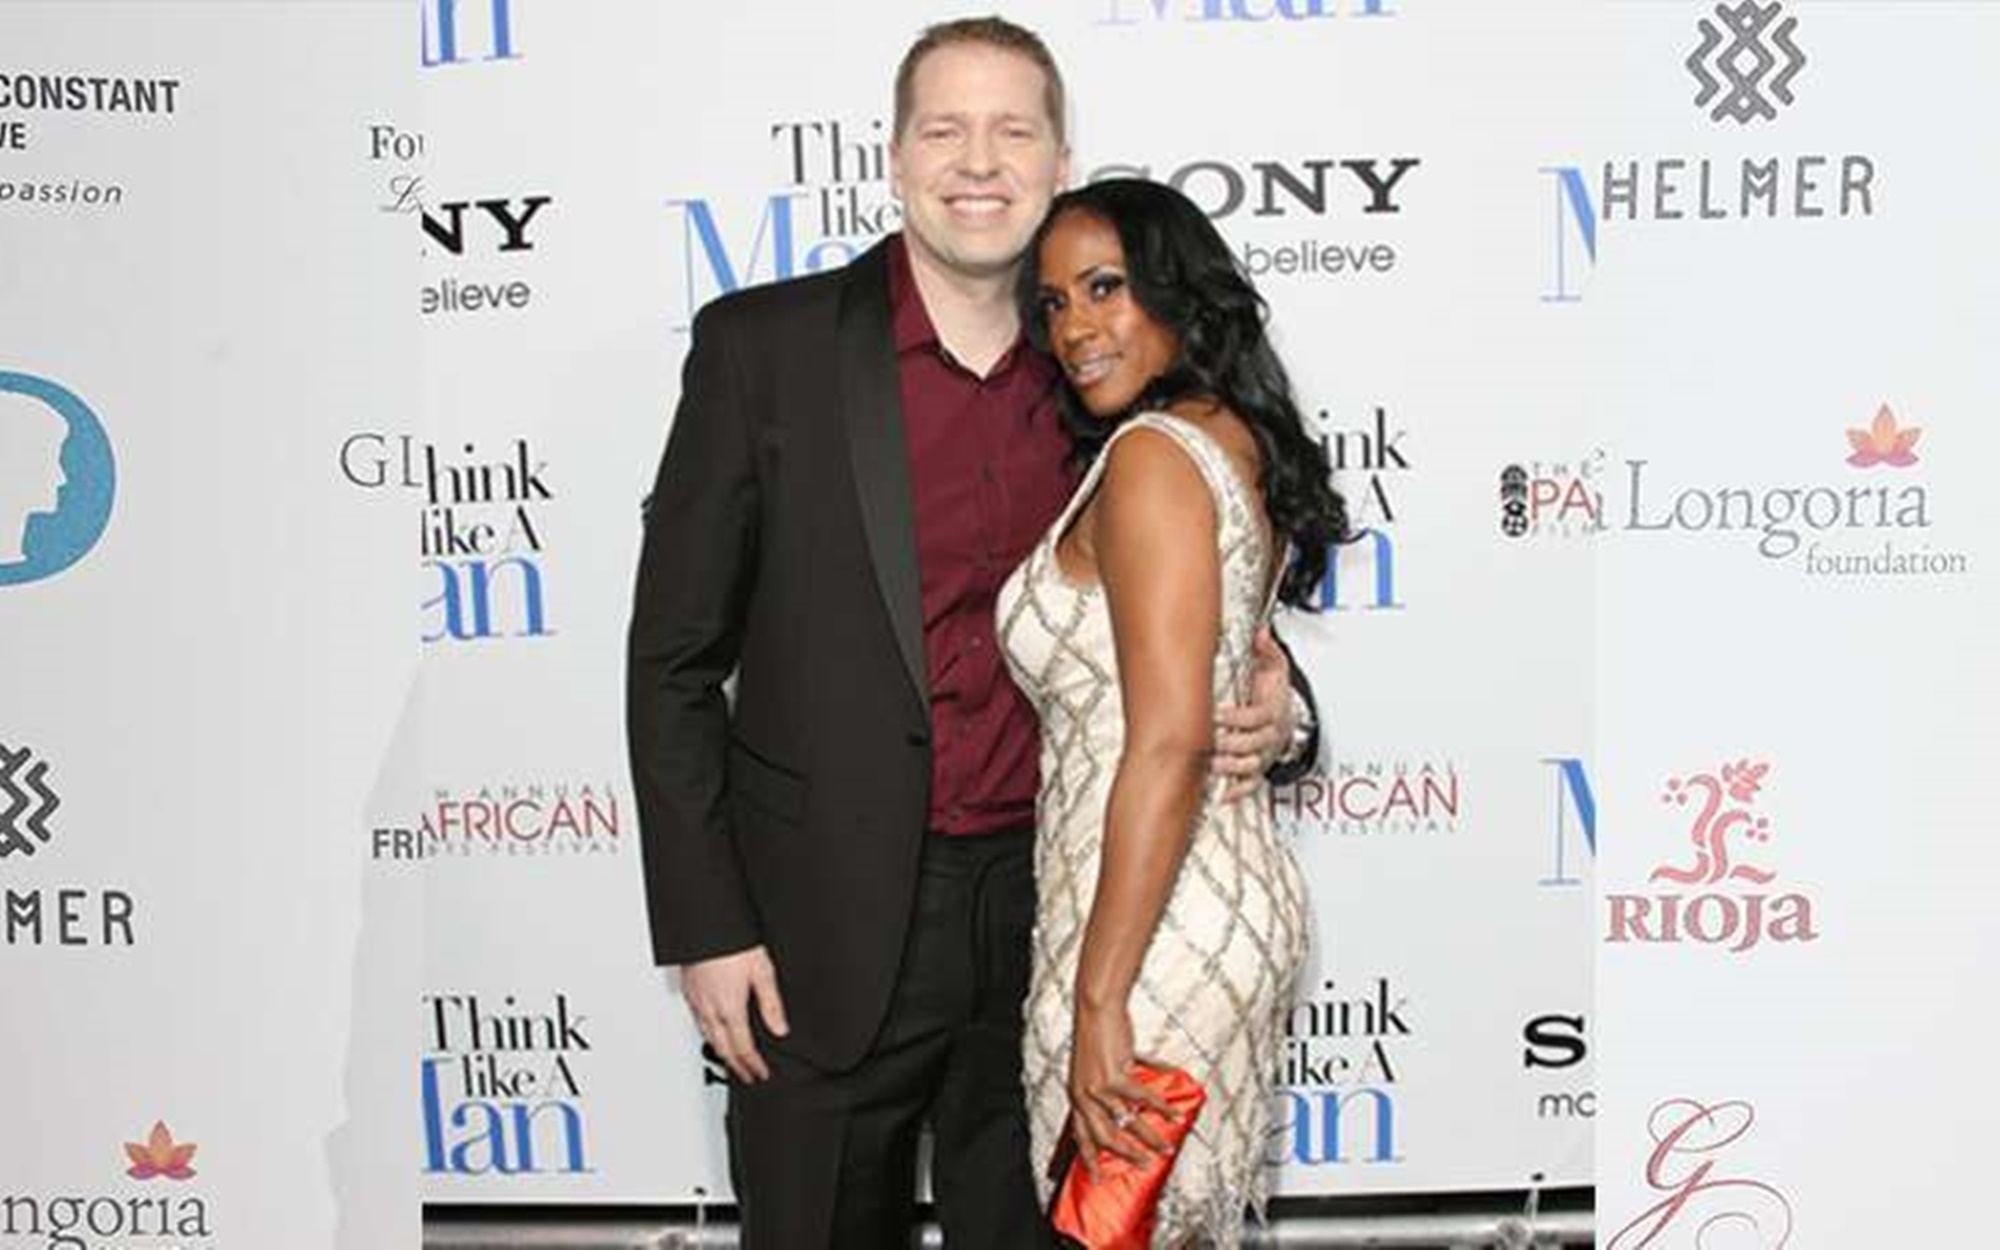 gary-owen-claims-delta-air-lines-discriminated-against-his-wife-kenya-duke